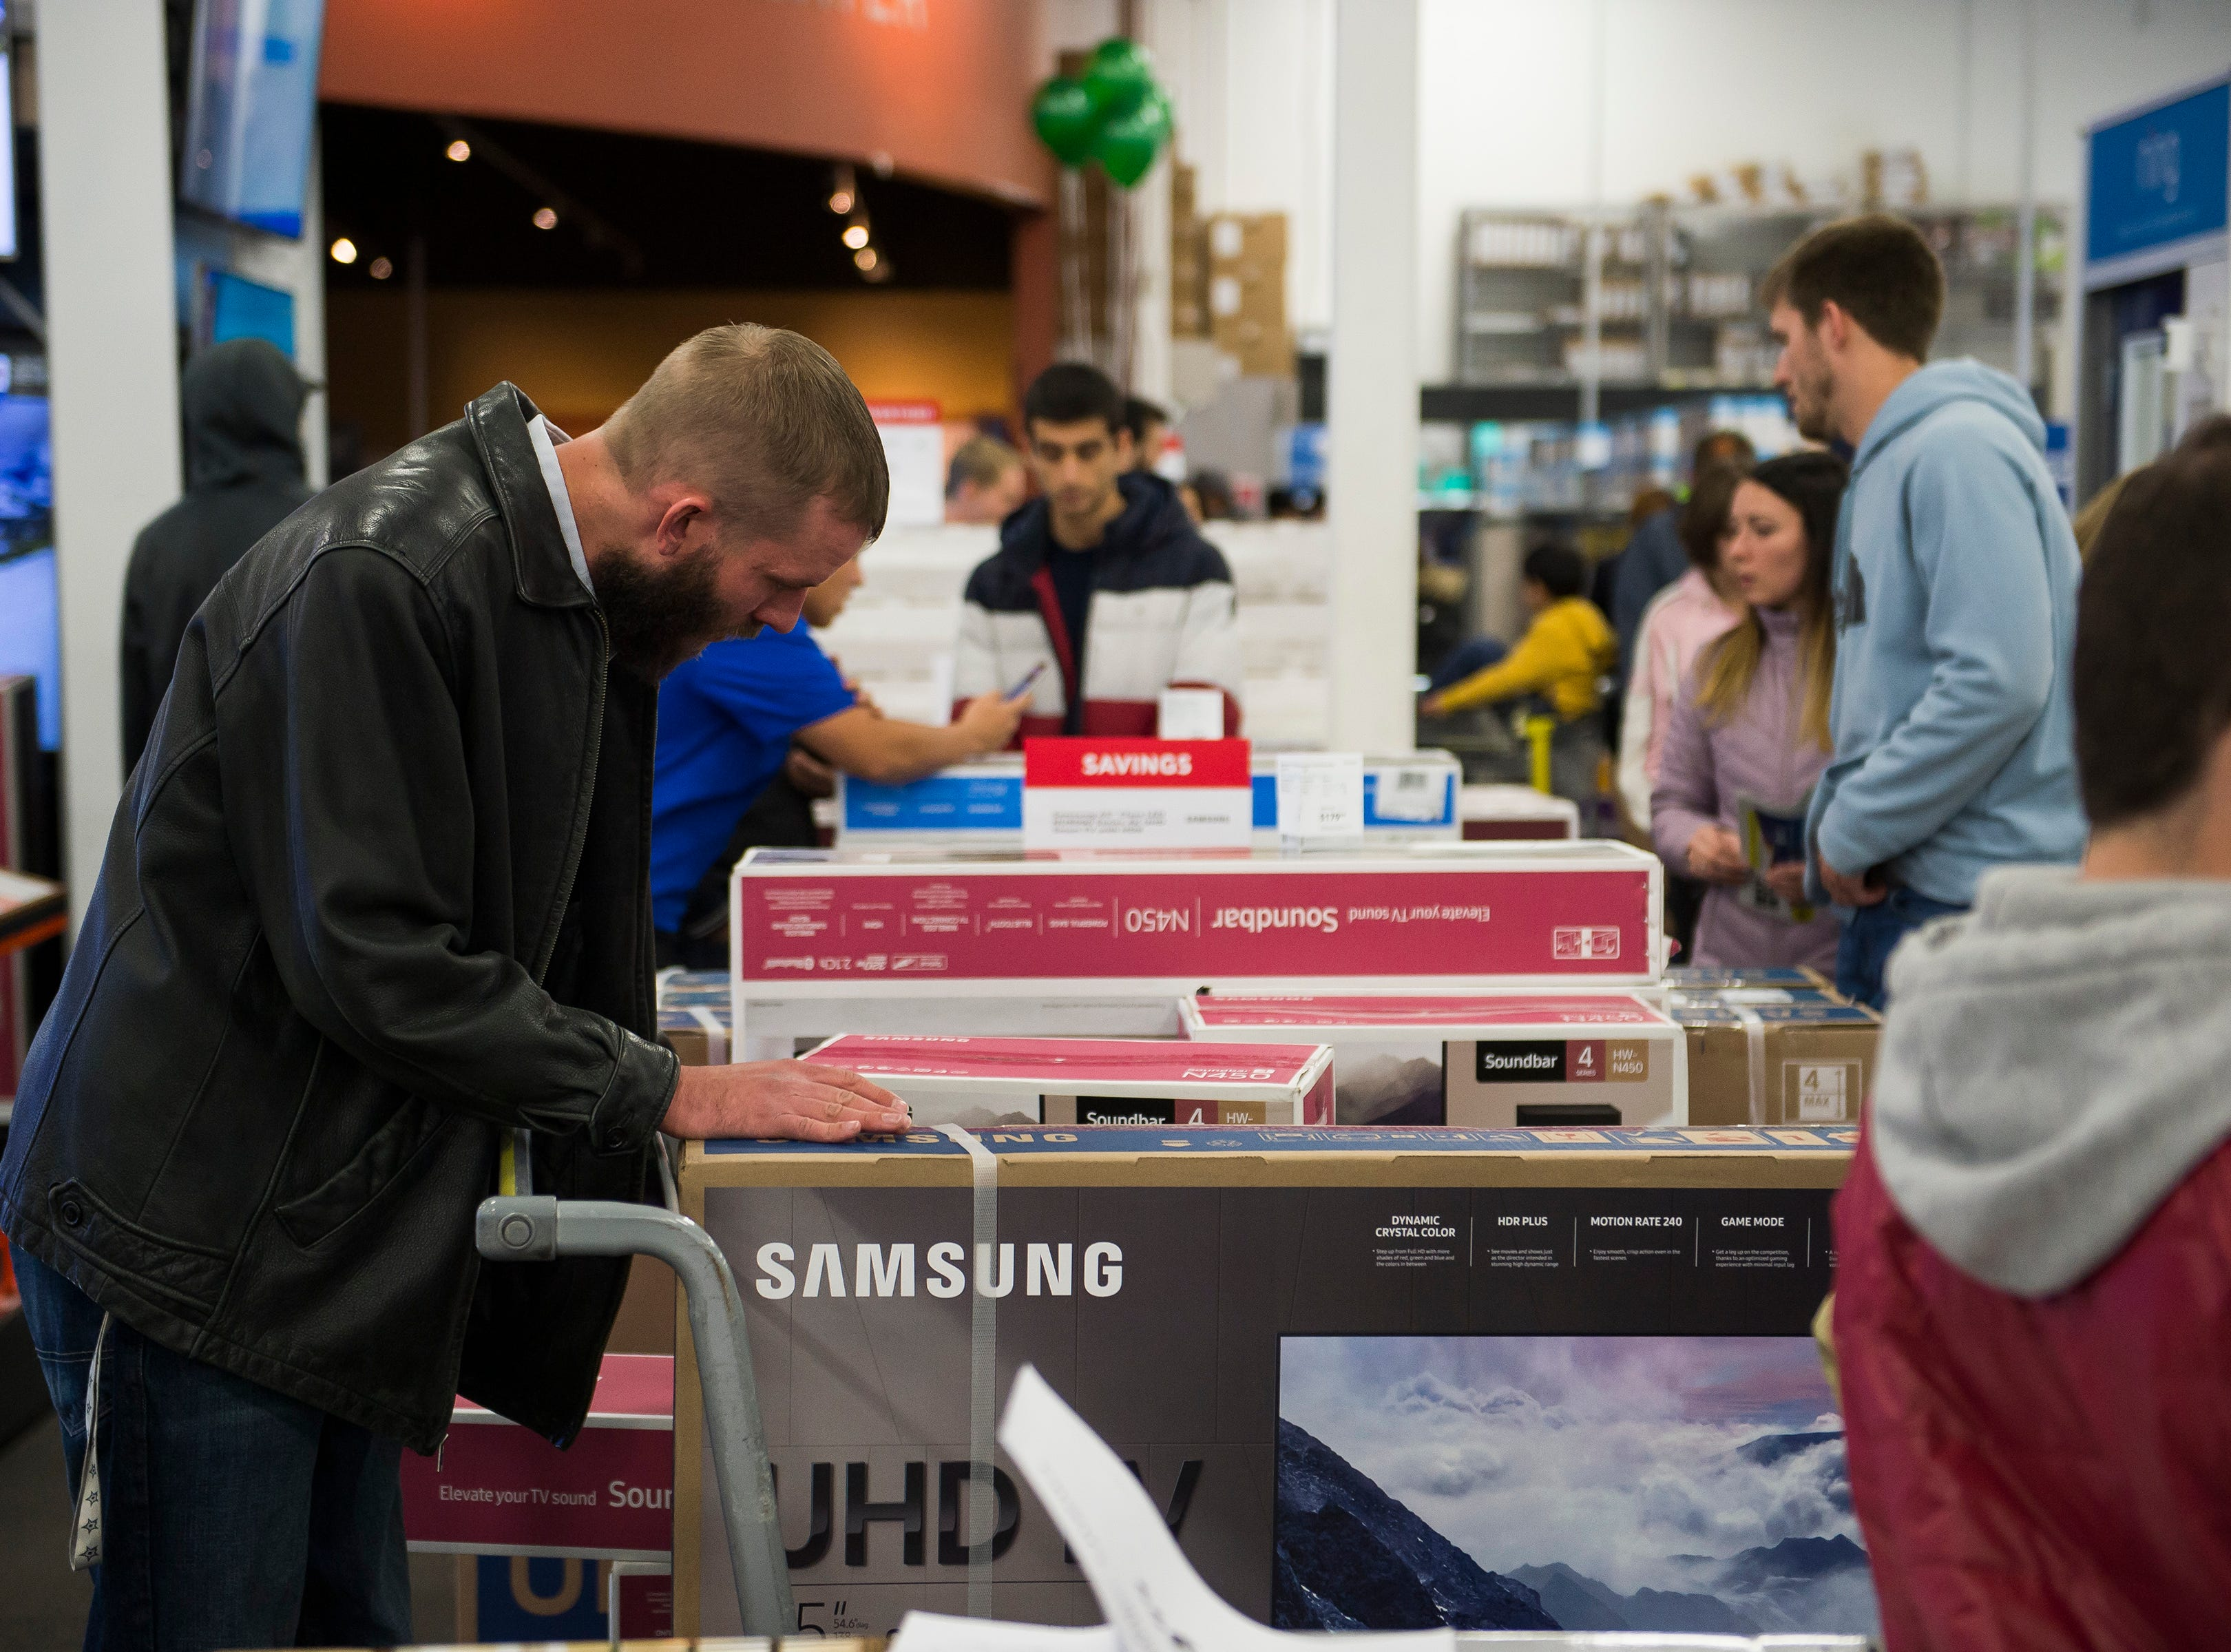 Customers browse through displays on Thursday, Nov. 22, 2018, at Best Buy in Fort Collins, Colo.